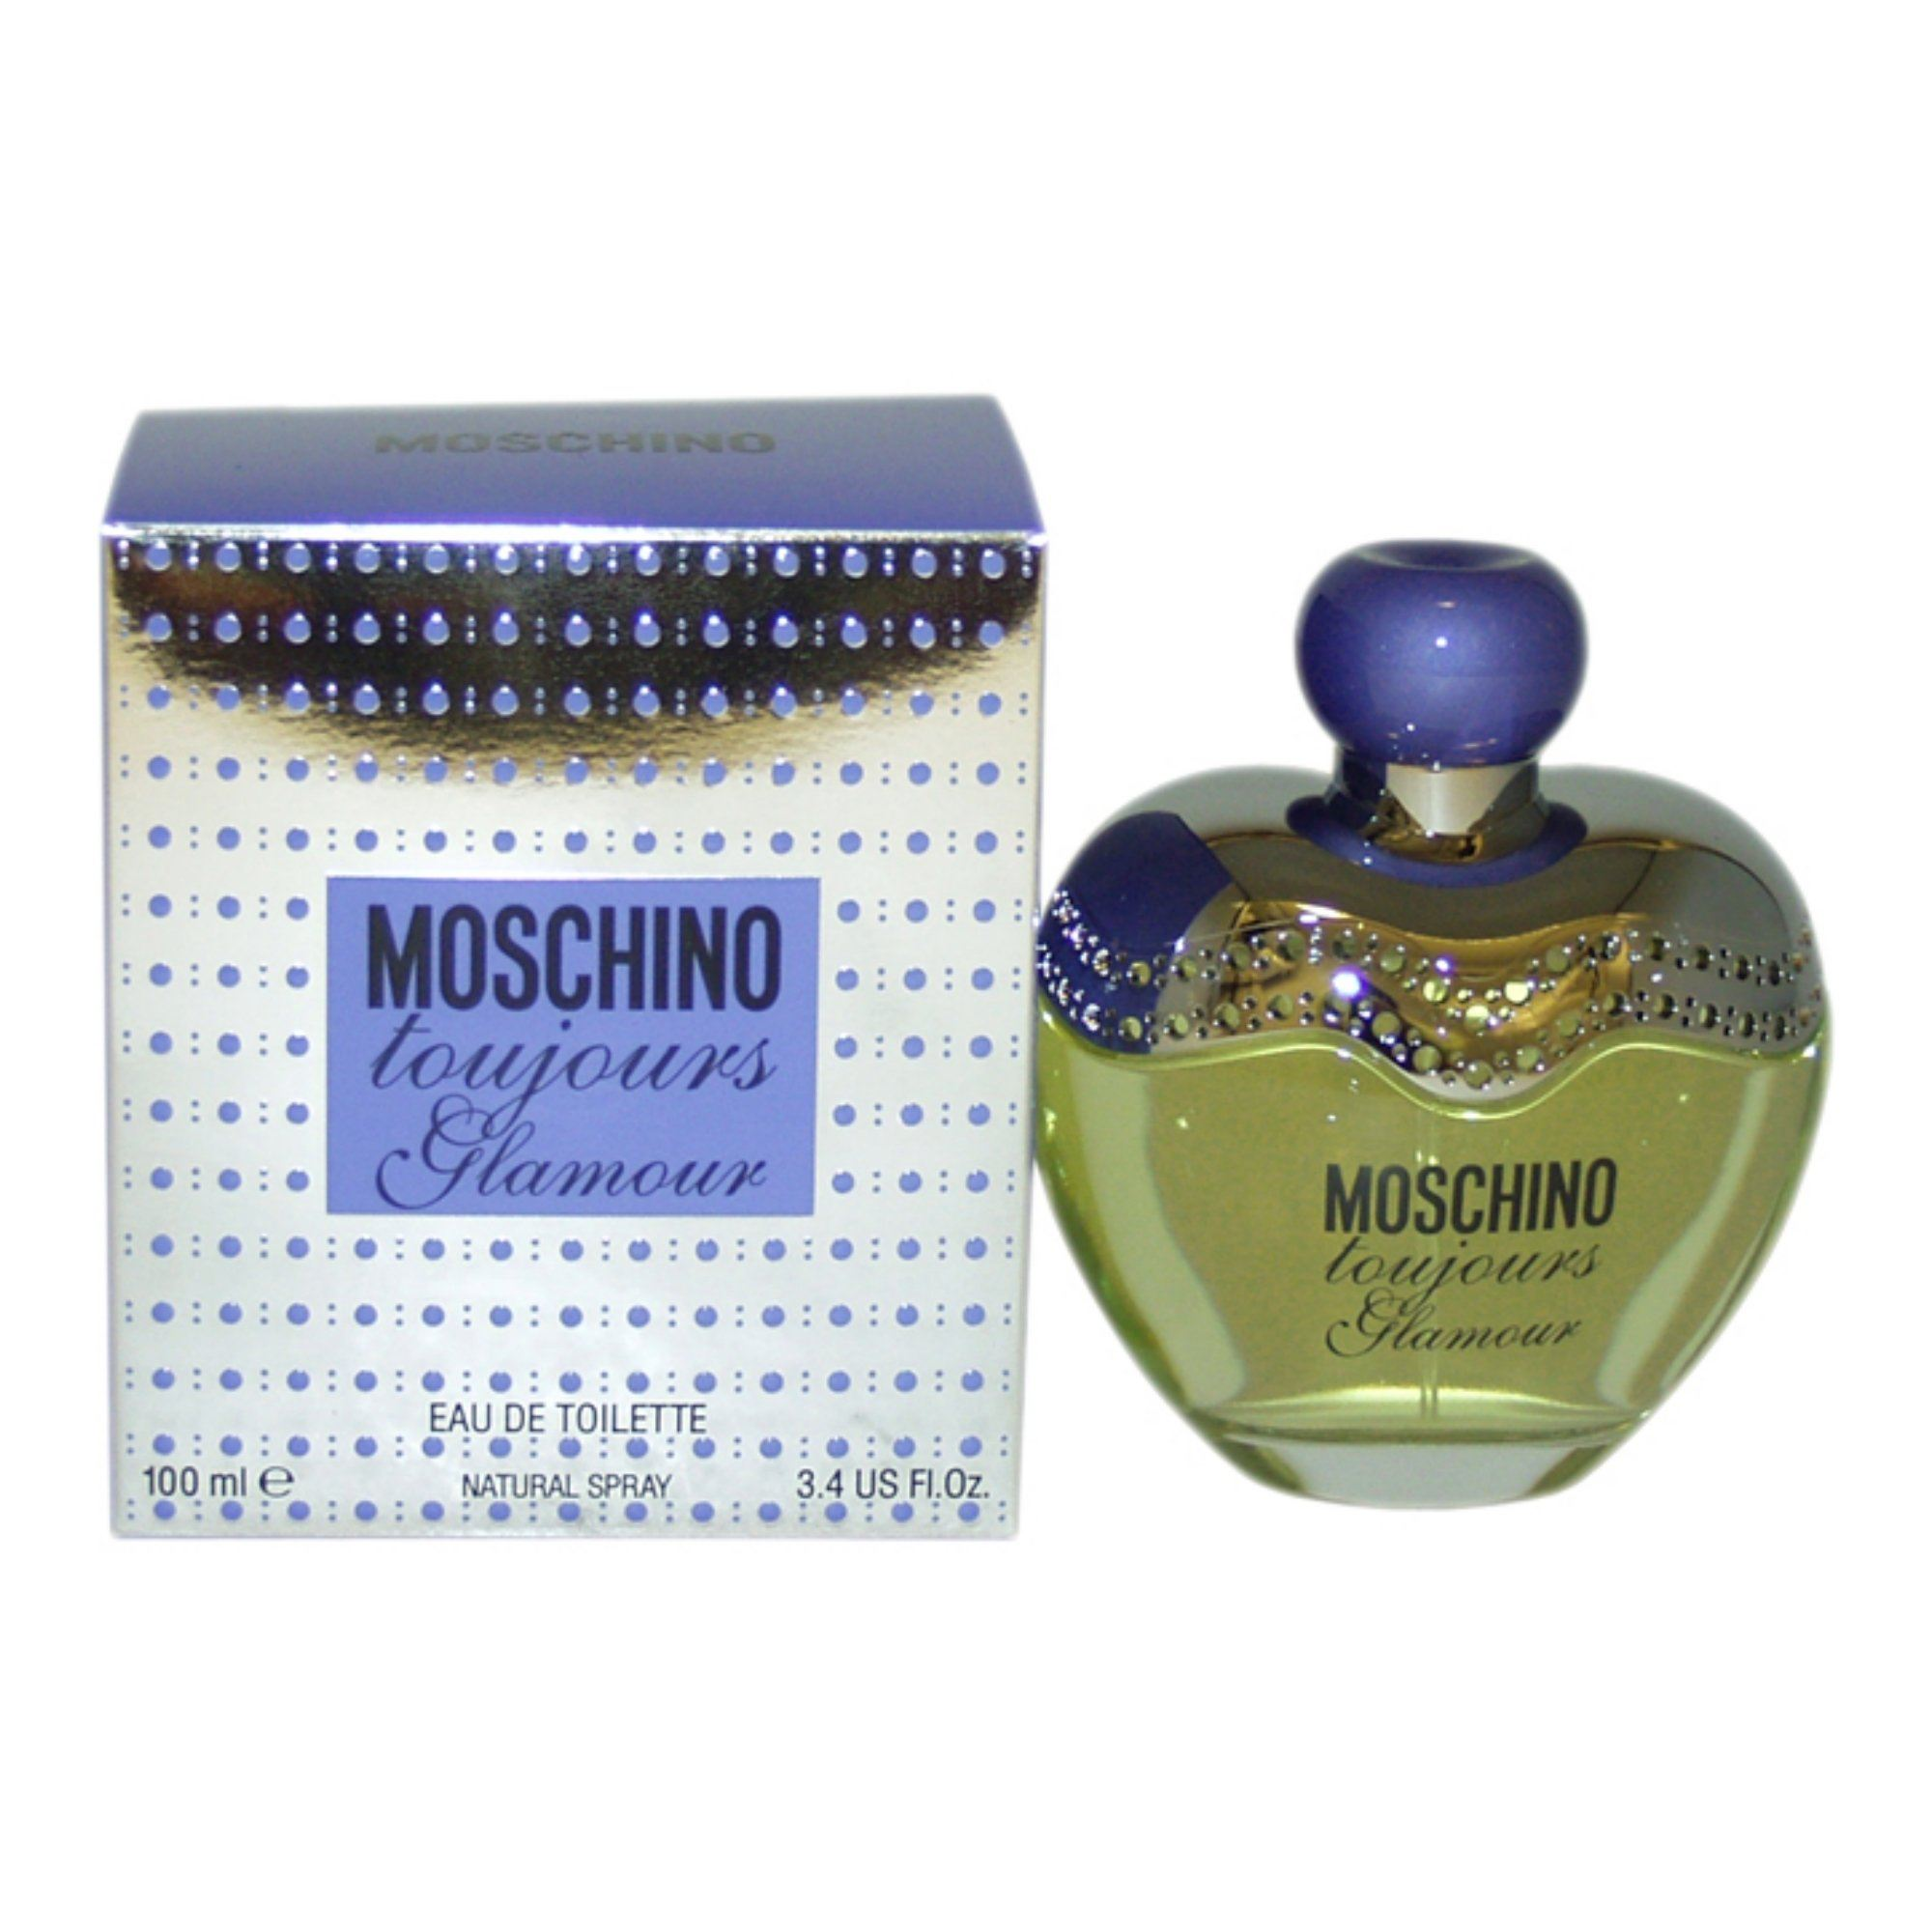 Moschino Glamour Toujours 100ml EDT